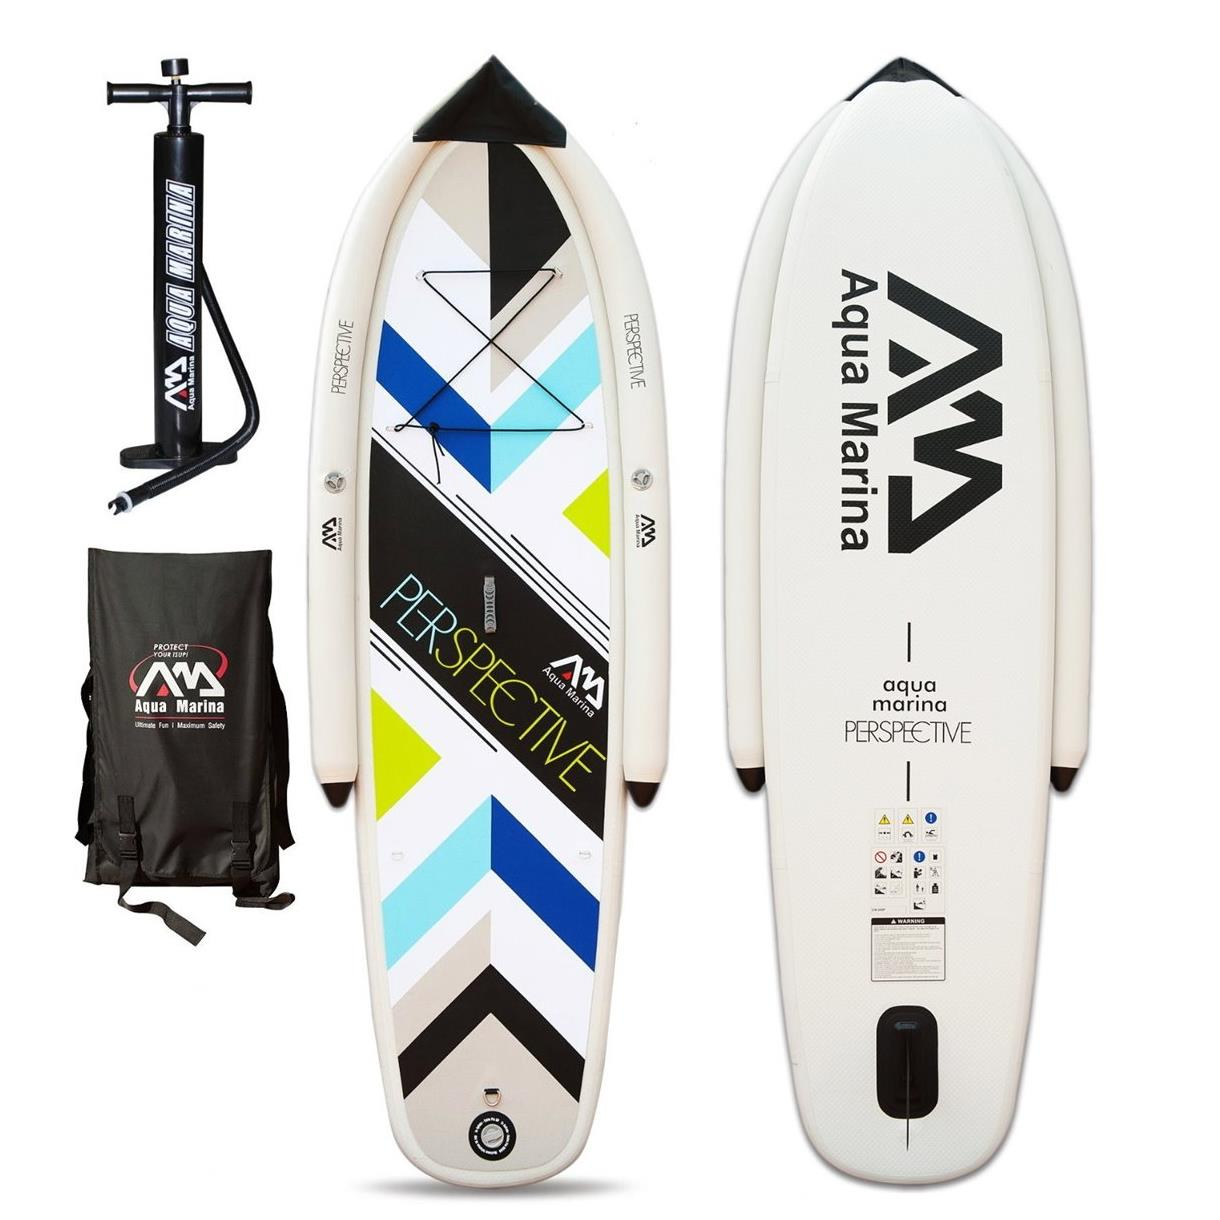 aqua marina perspective stand up paddling surfboard paddel sup board isup. Black Bedroom Furniture Sets. Home Design Ideas